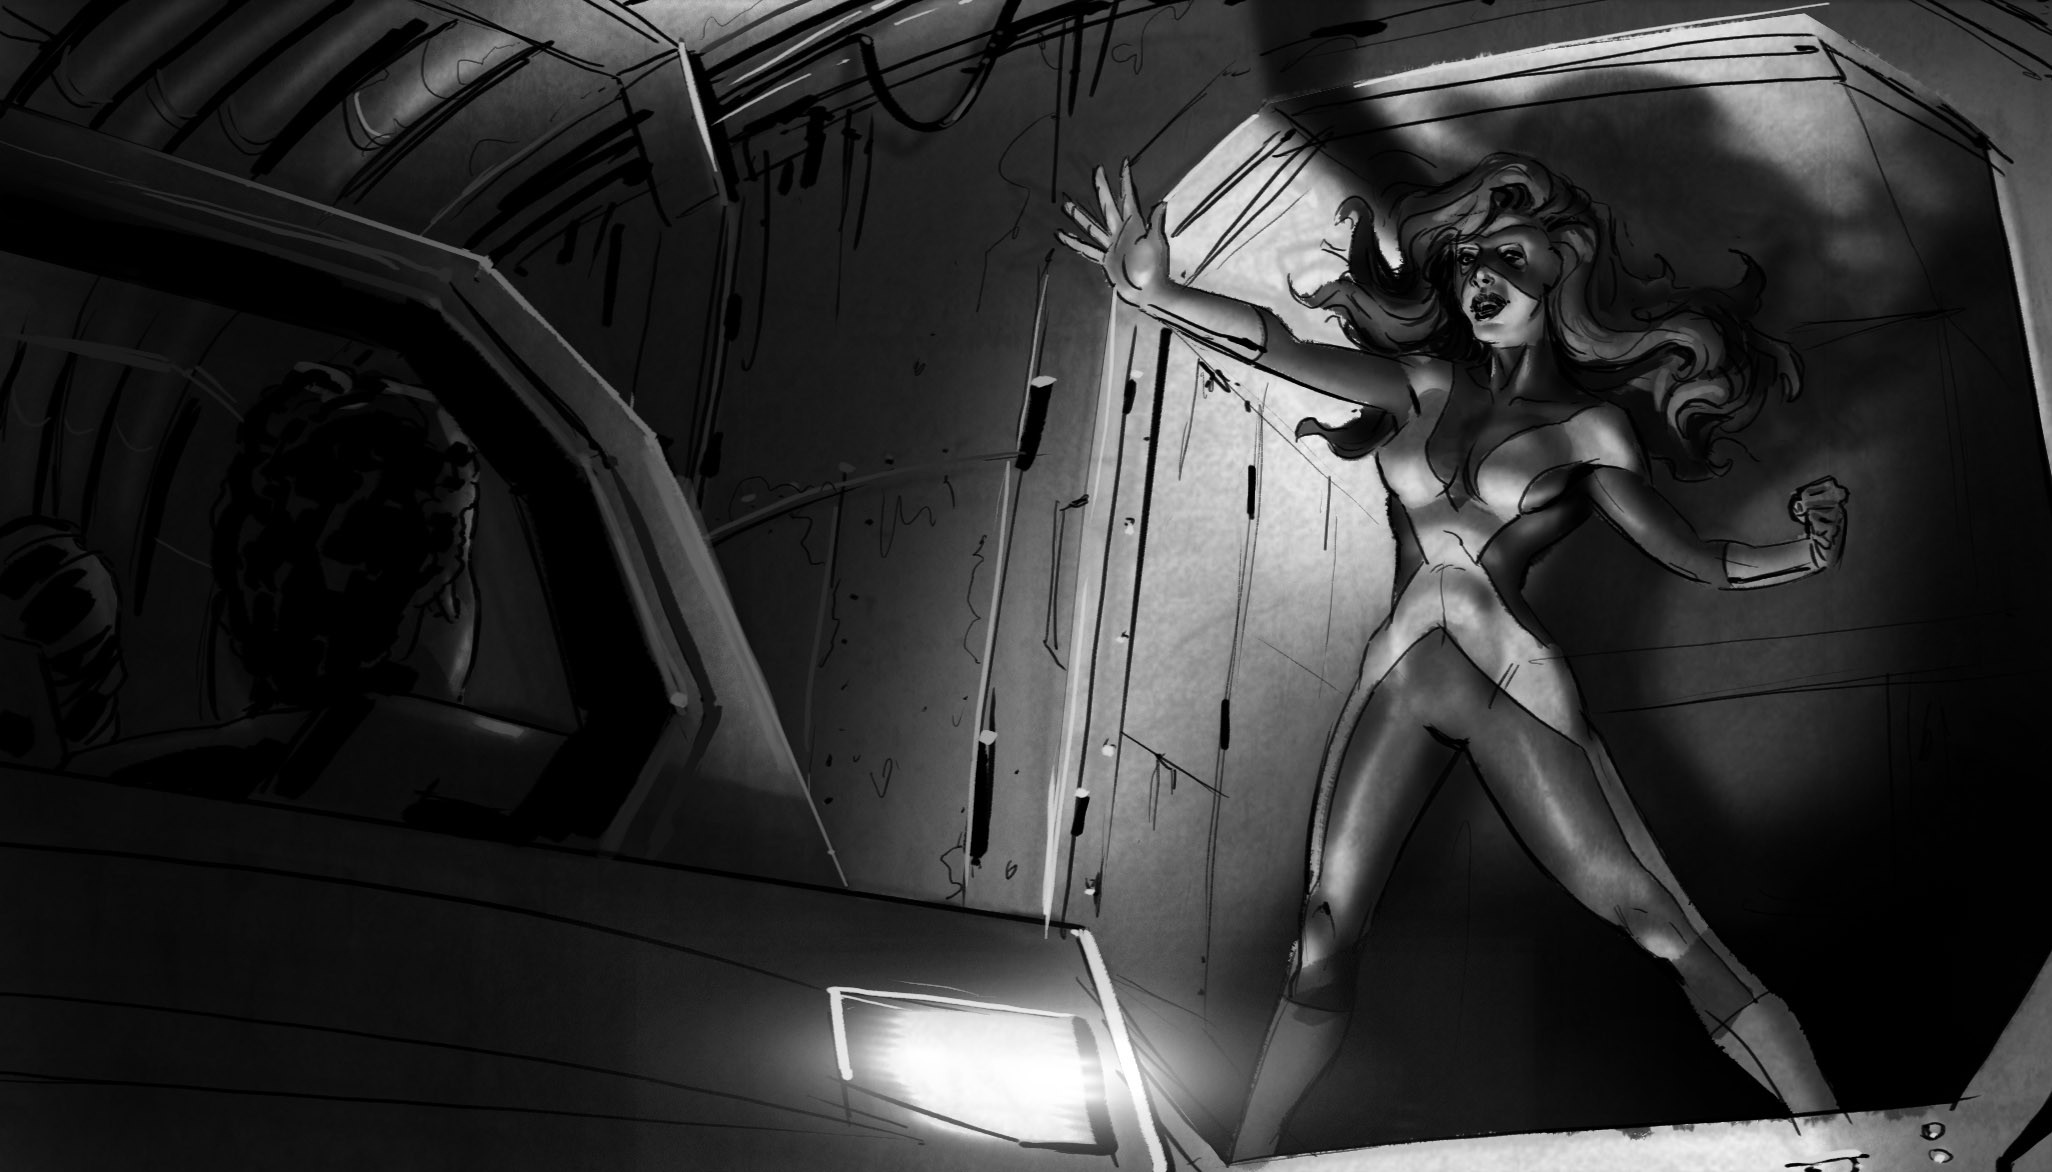 -- Phoenix appears, tearing a hole in the wall and steering us away from danger.